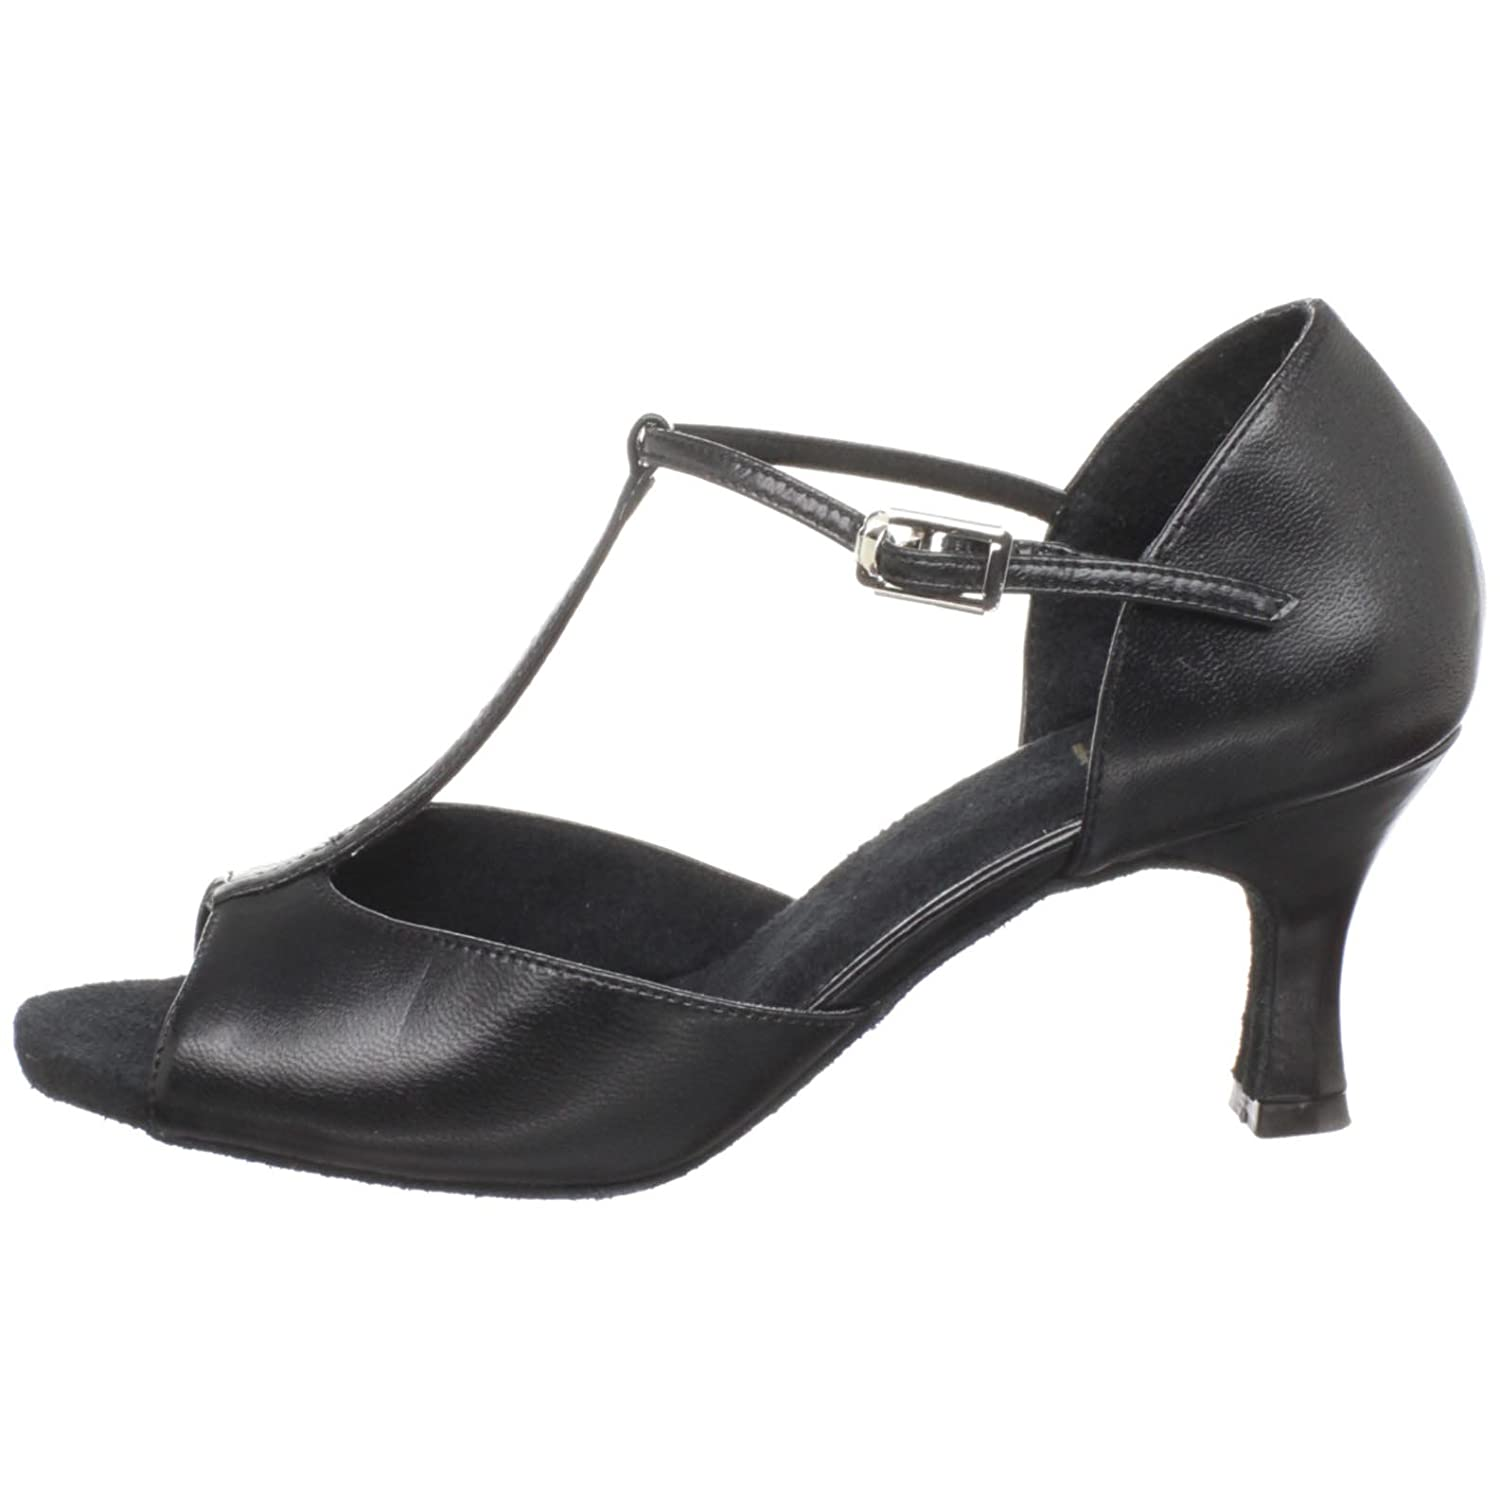 Bloch Dance Woherren Woherren Woherren Illeana Leather Latin Salsa Ballroom Competition Dance schuhe a78364